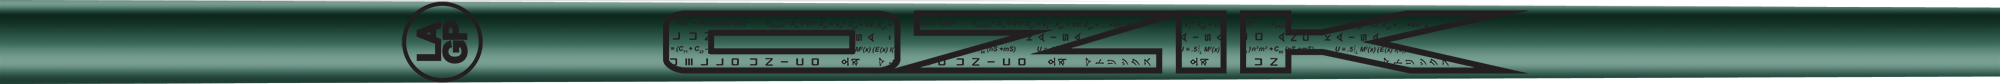 Ozik White Tie: Masters Green Black Gloss - Wood 60 S